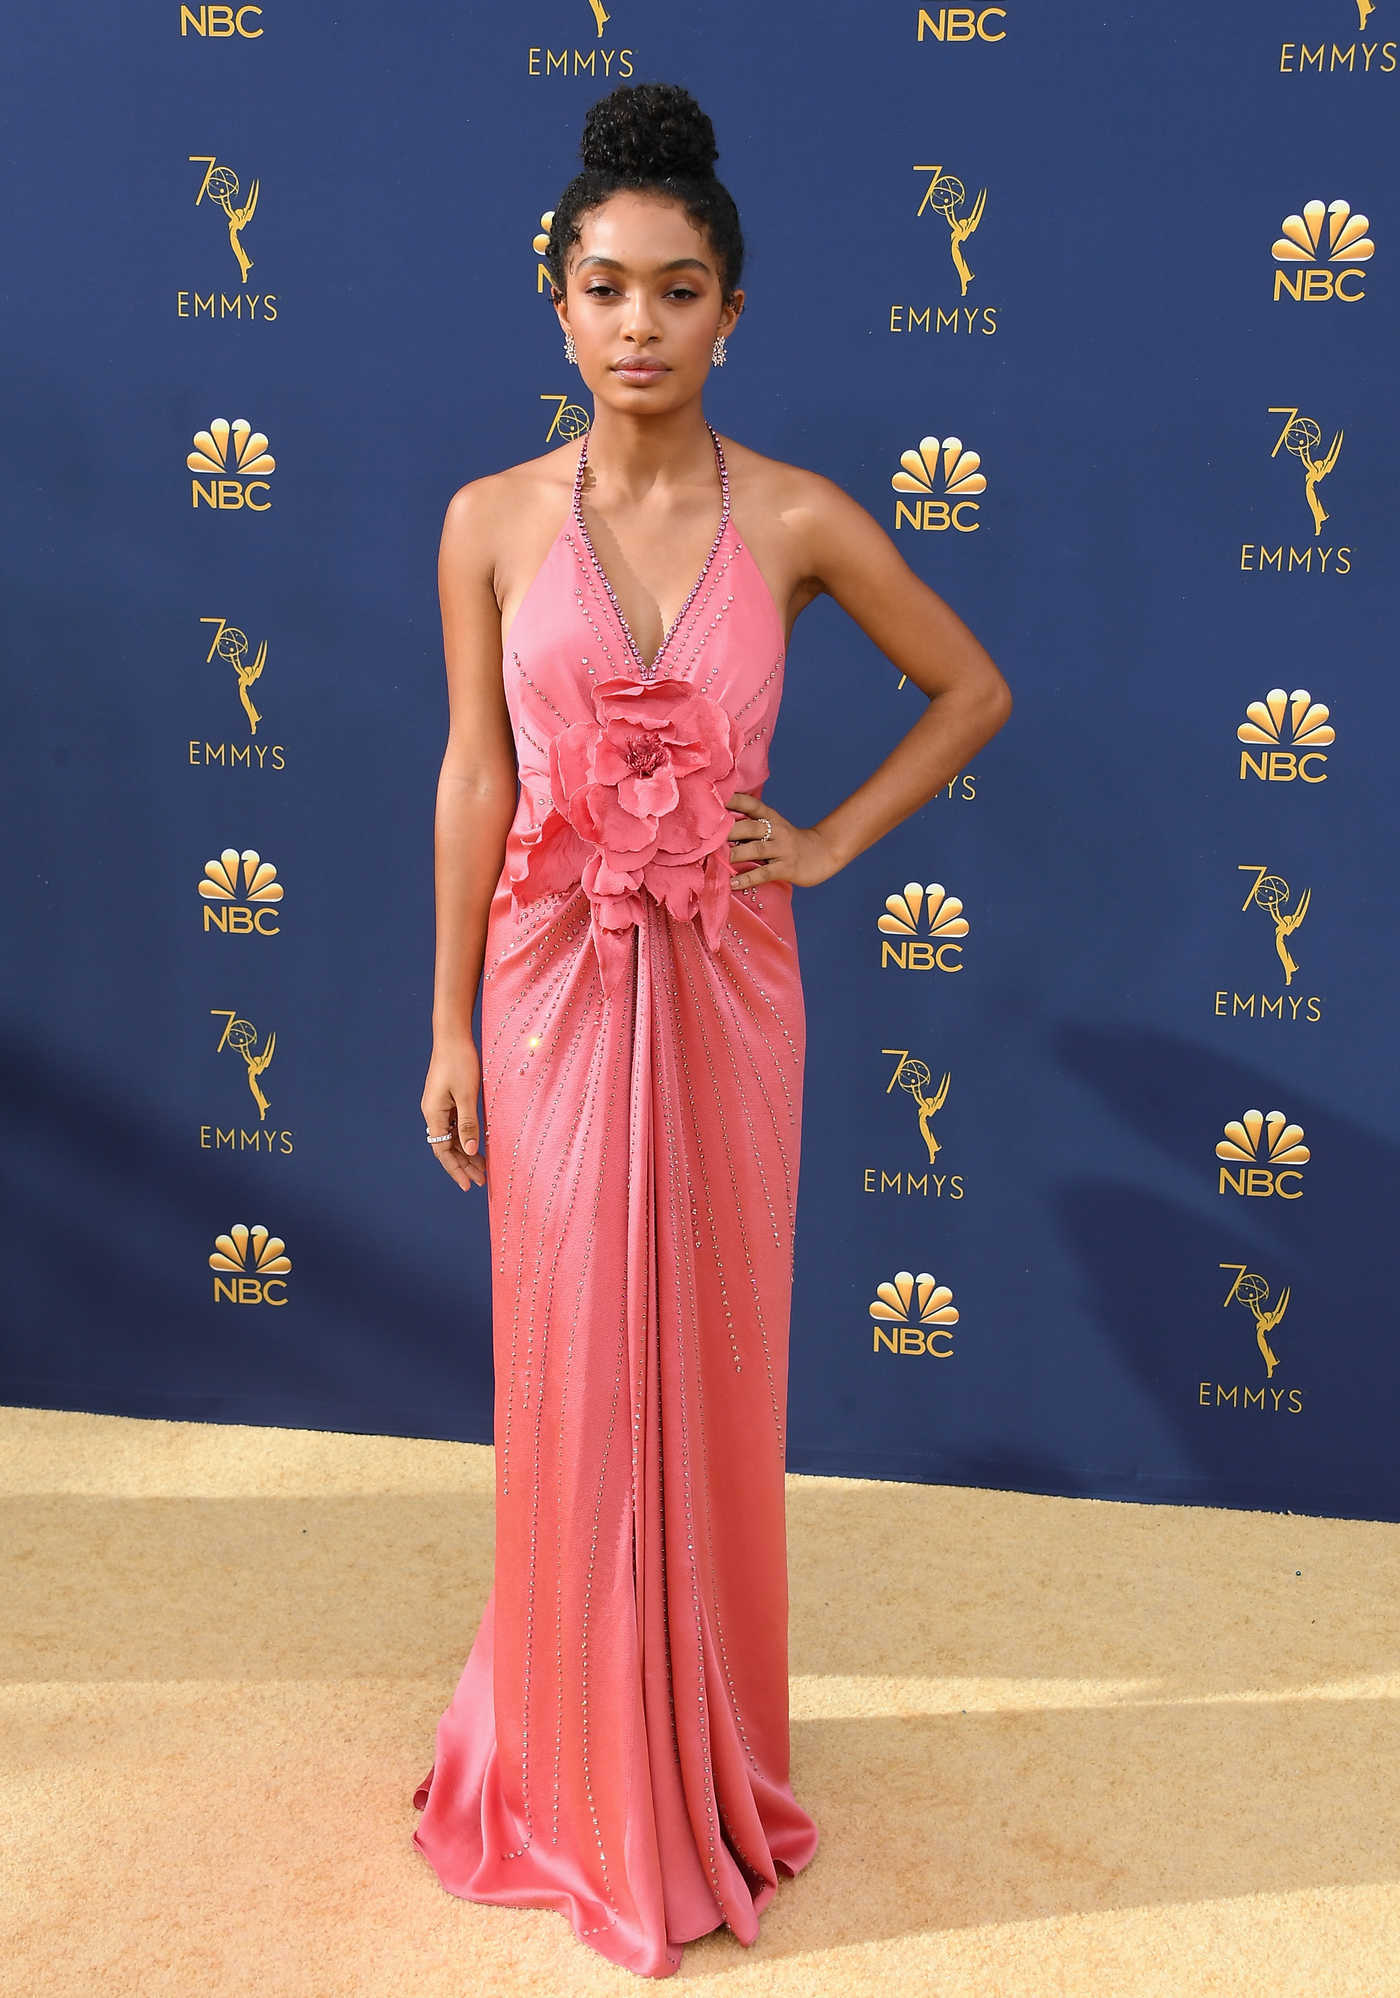 Yara Shahidi at the 70th Primetime Emmy Awards in LA 09/17/2018